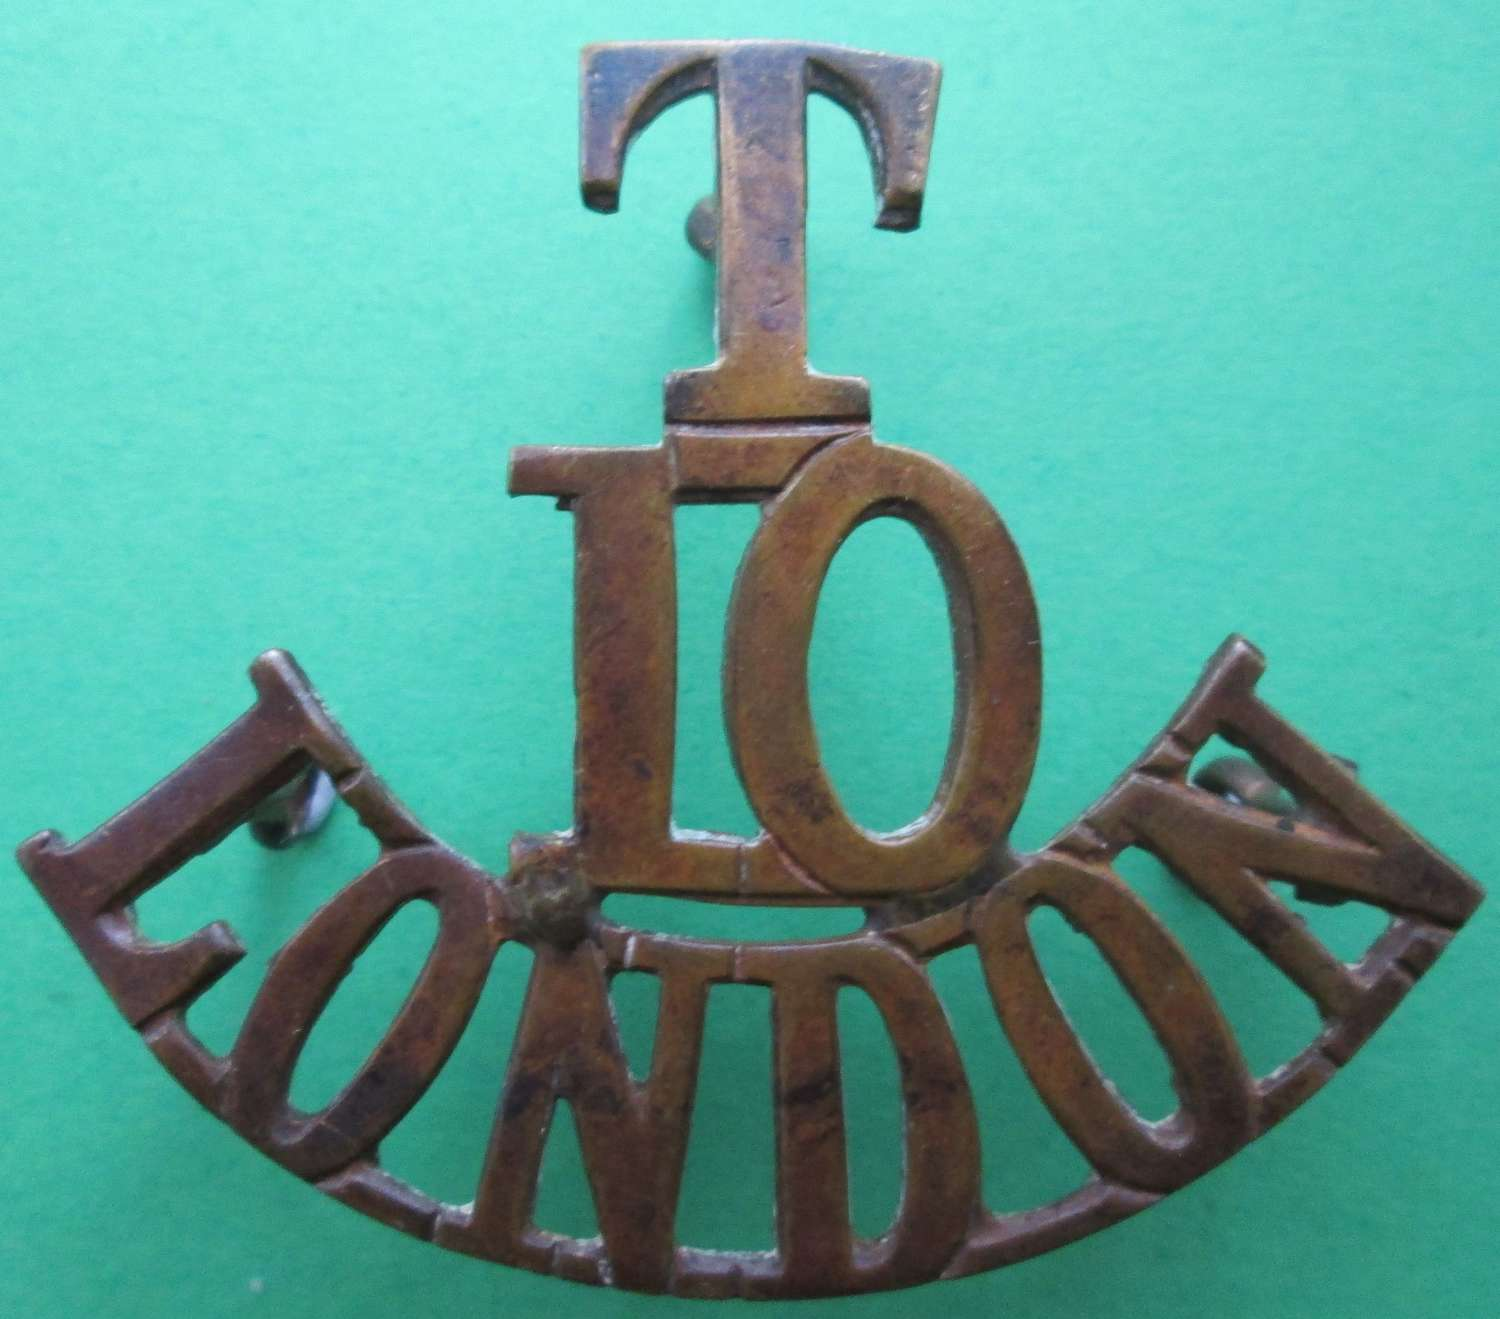 TERRITORIALS 10TH LONDON REGIMENT (HACKNEYS)